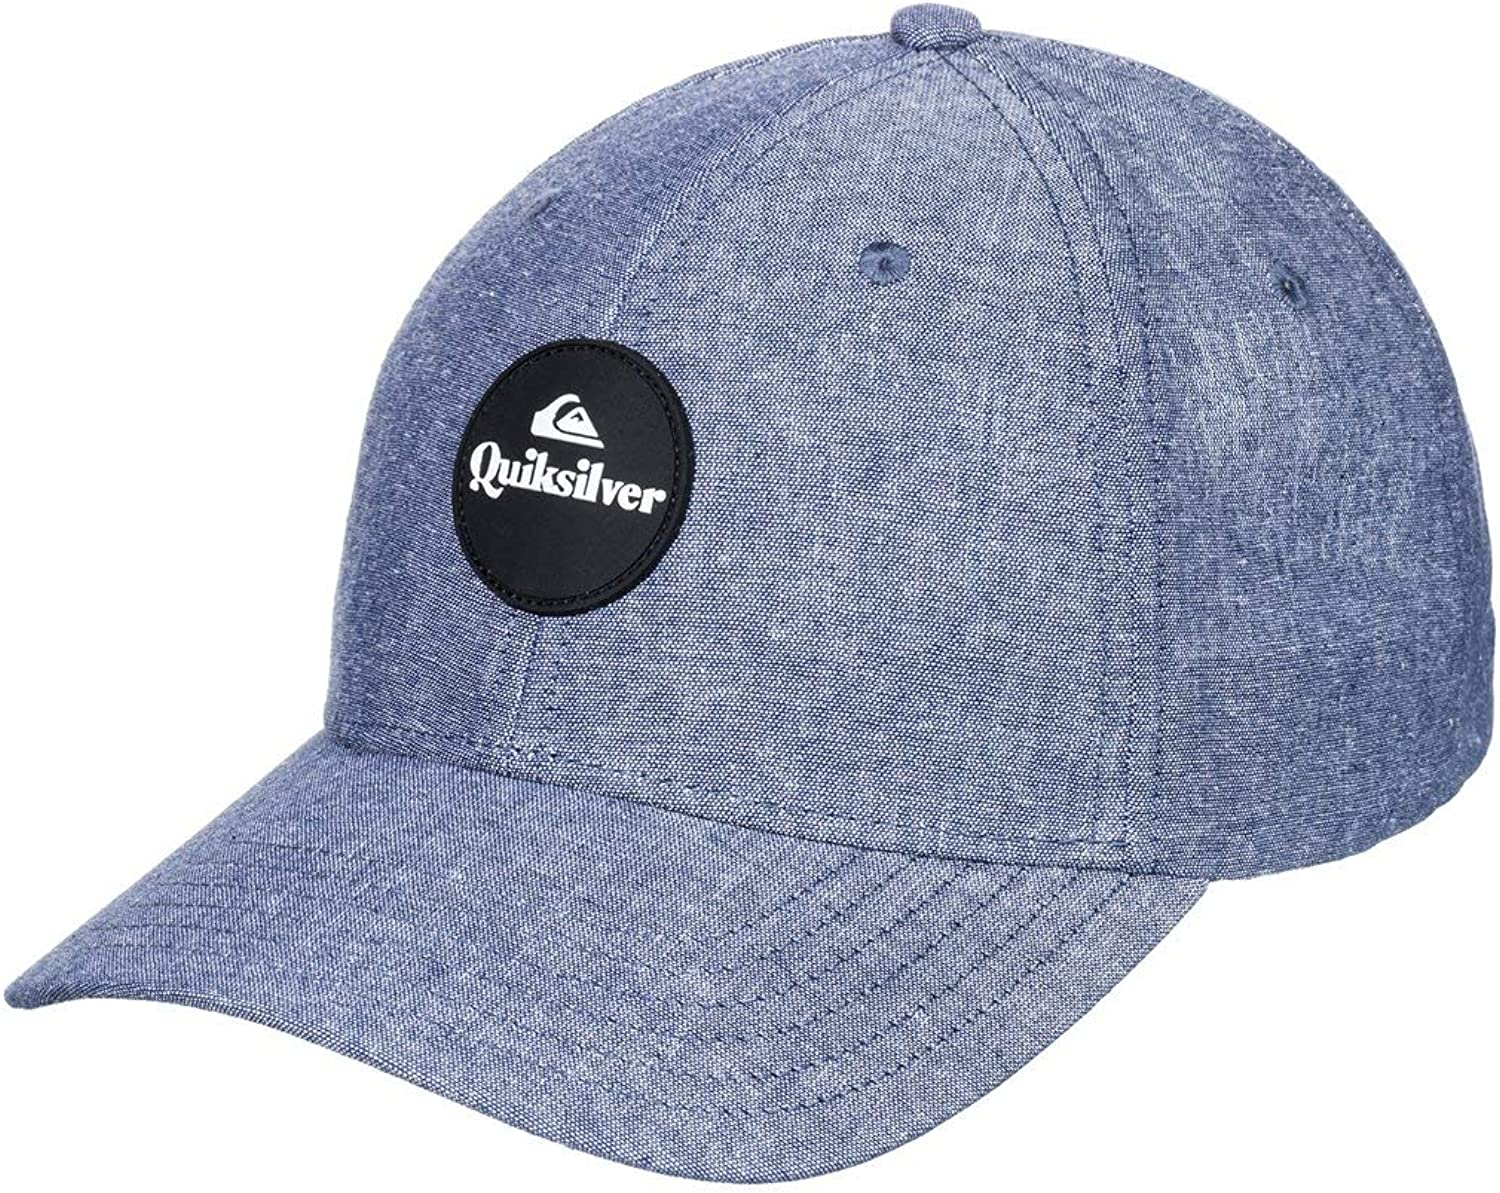 Quiksilver Decades Advanced Mens Cap Blazer Size Challenge the lowest price of Japan ☆ Navy Daily bargain sale One